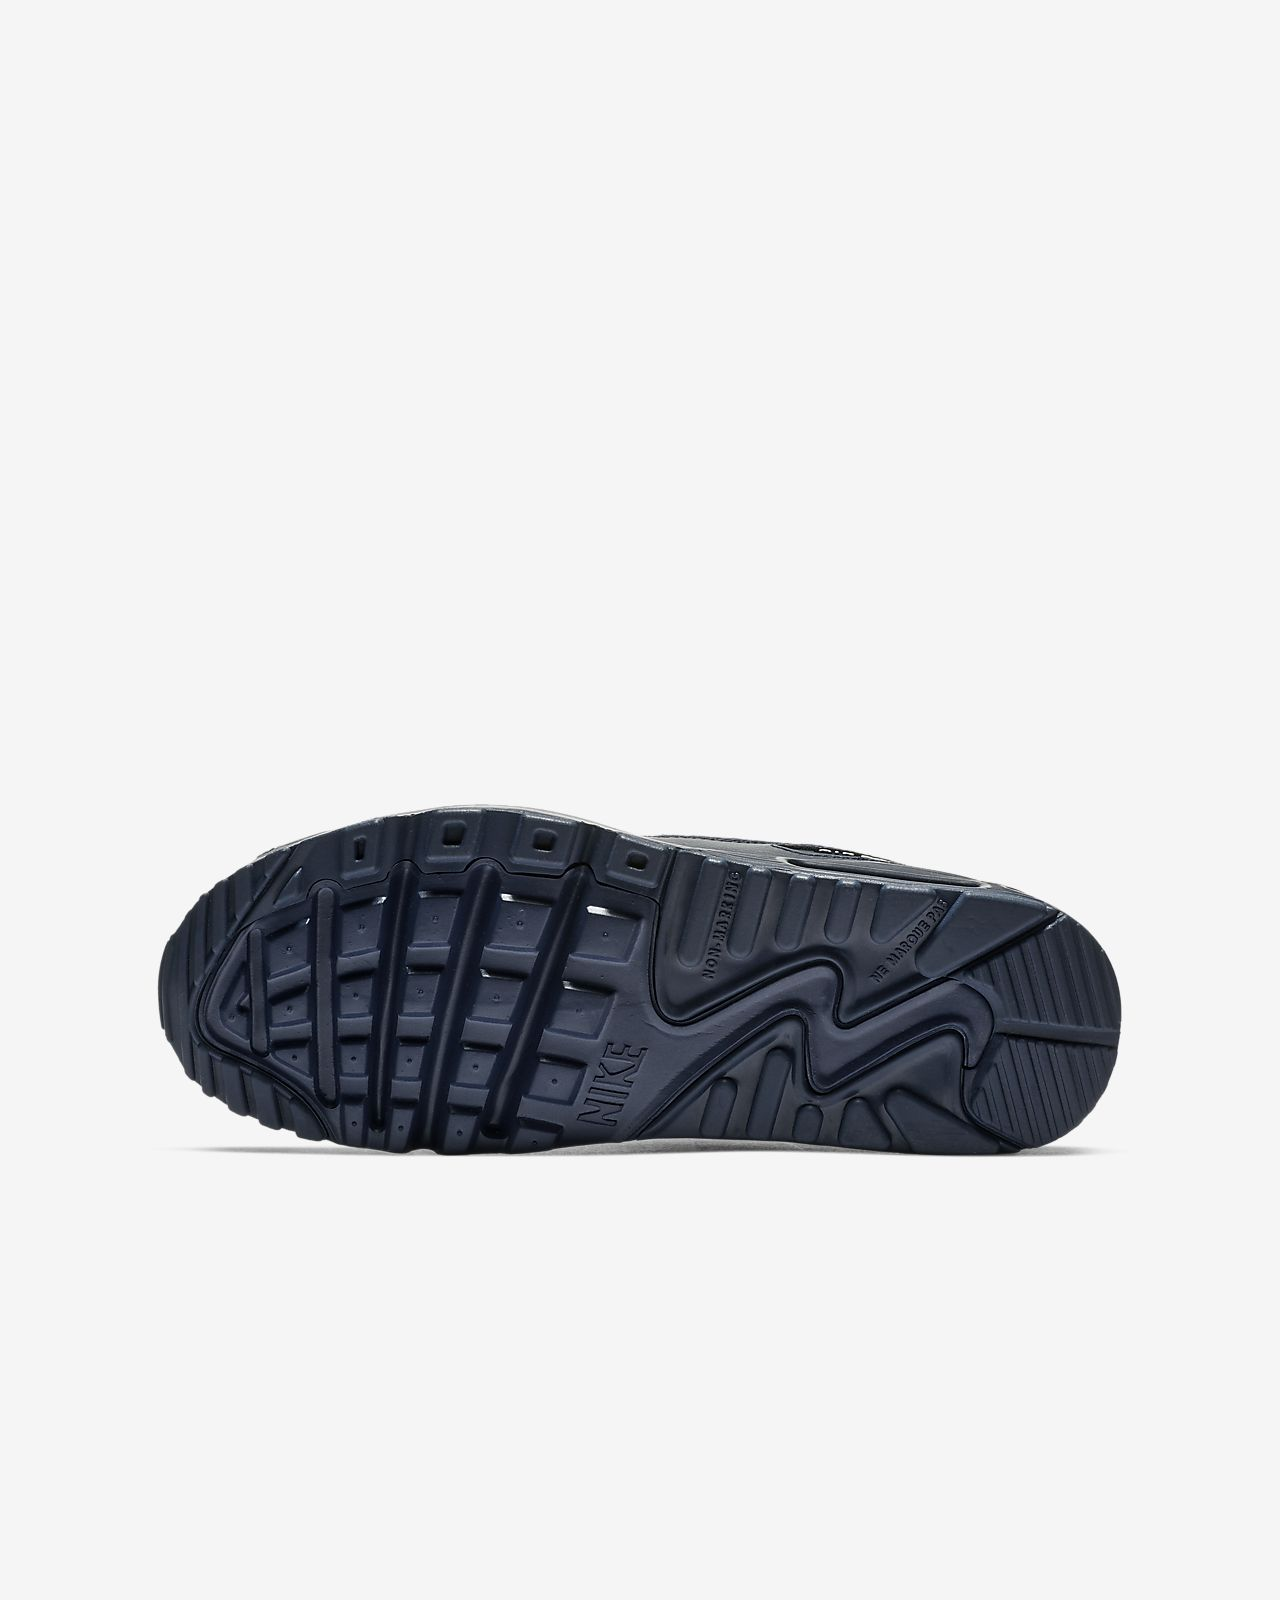 reputable site 4ff2f 3dca9 ... Nike Air Max 90 Leather Older Kids  Shoe